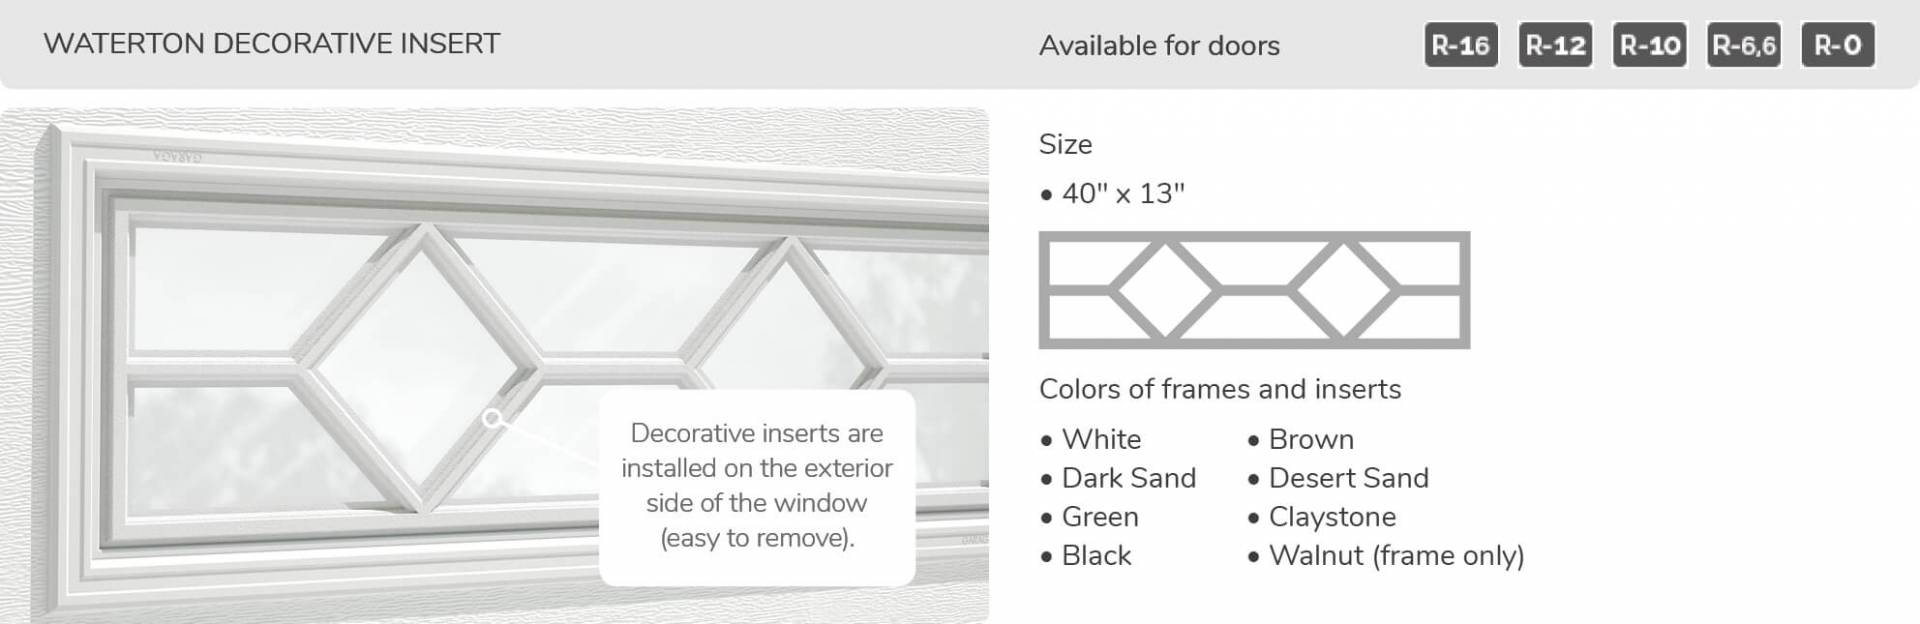 "Waterton Decorative Insert, 40"" x 13"", available for doors R-16, R-12, R-10, R-6.6, R-0"